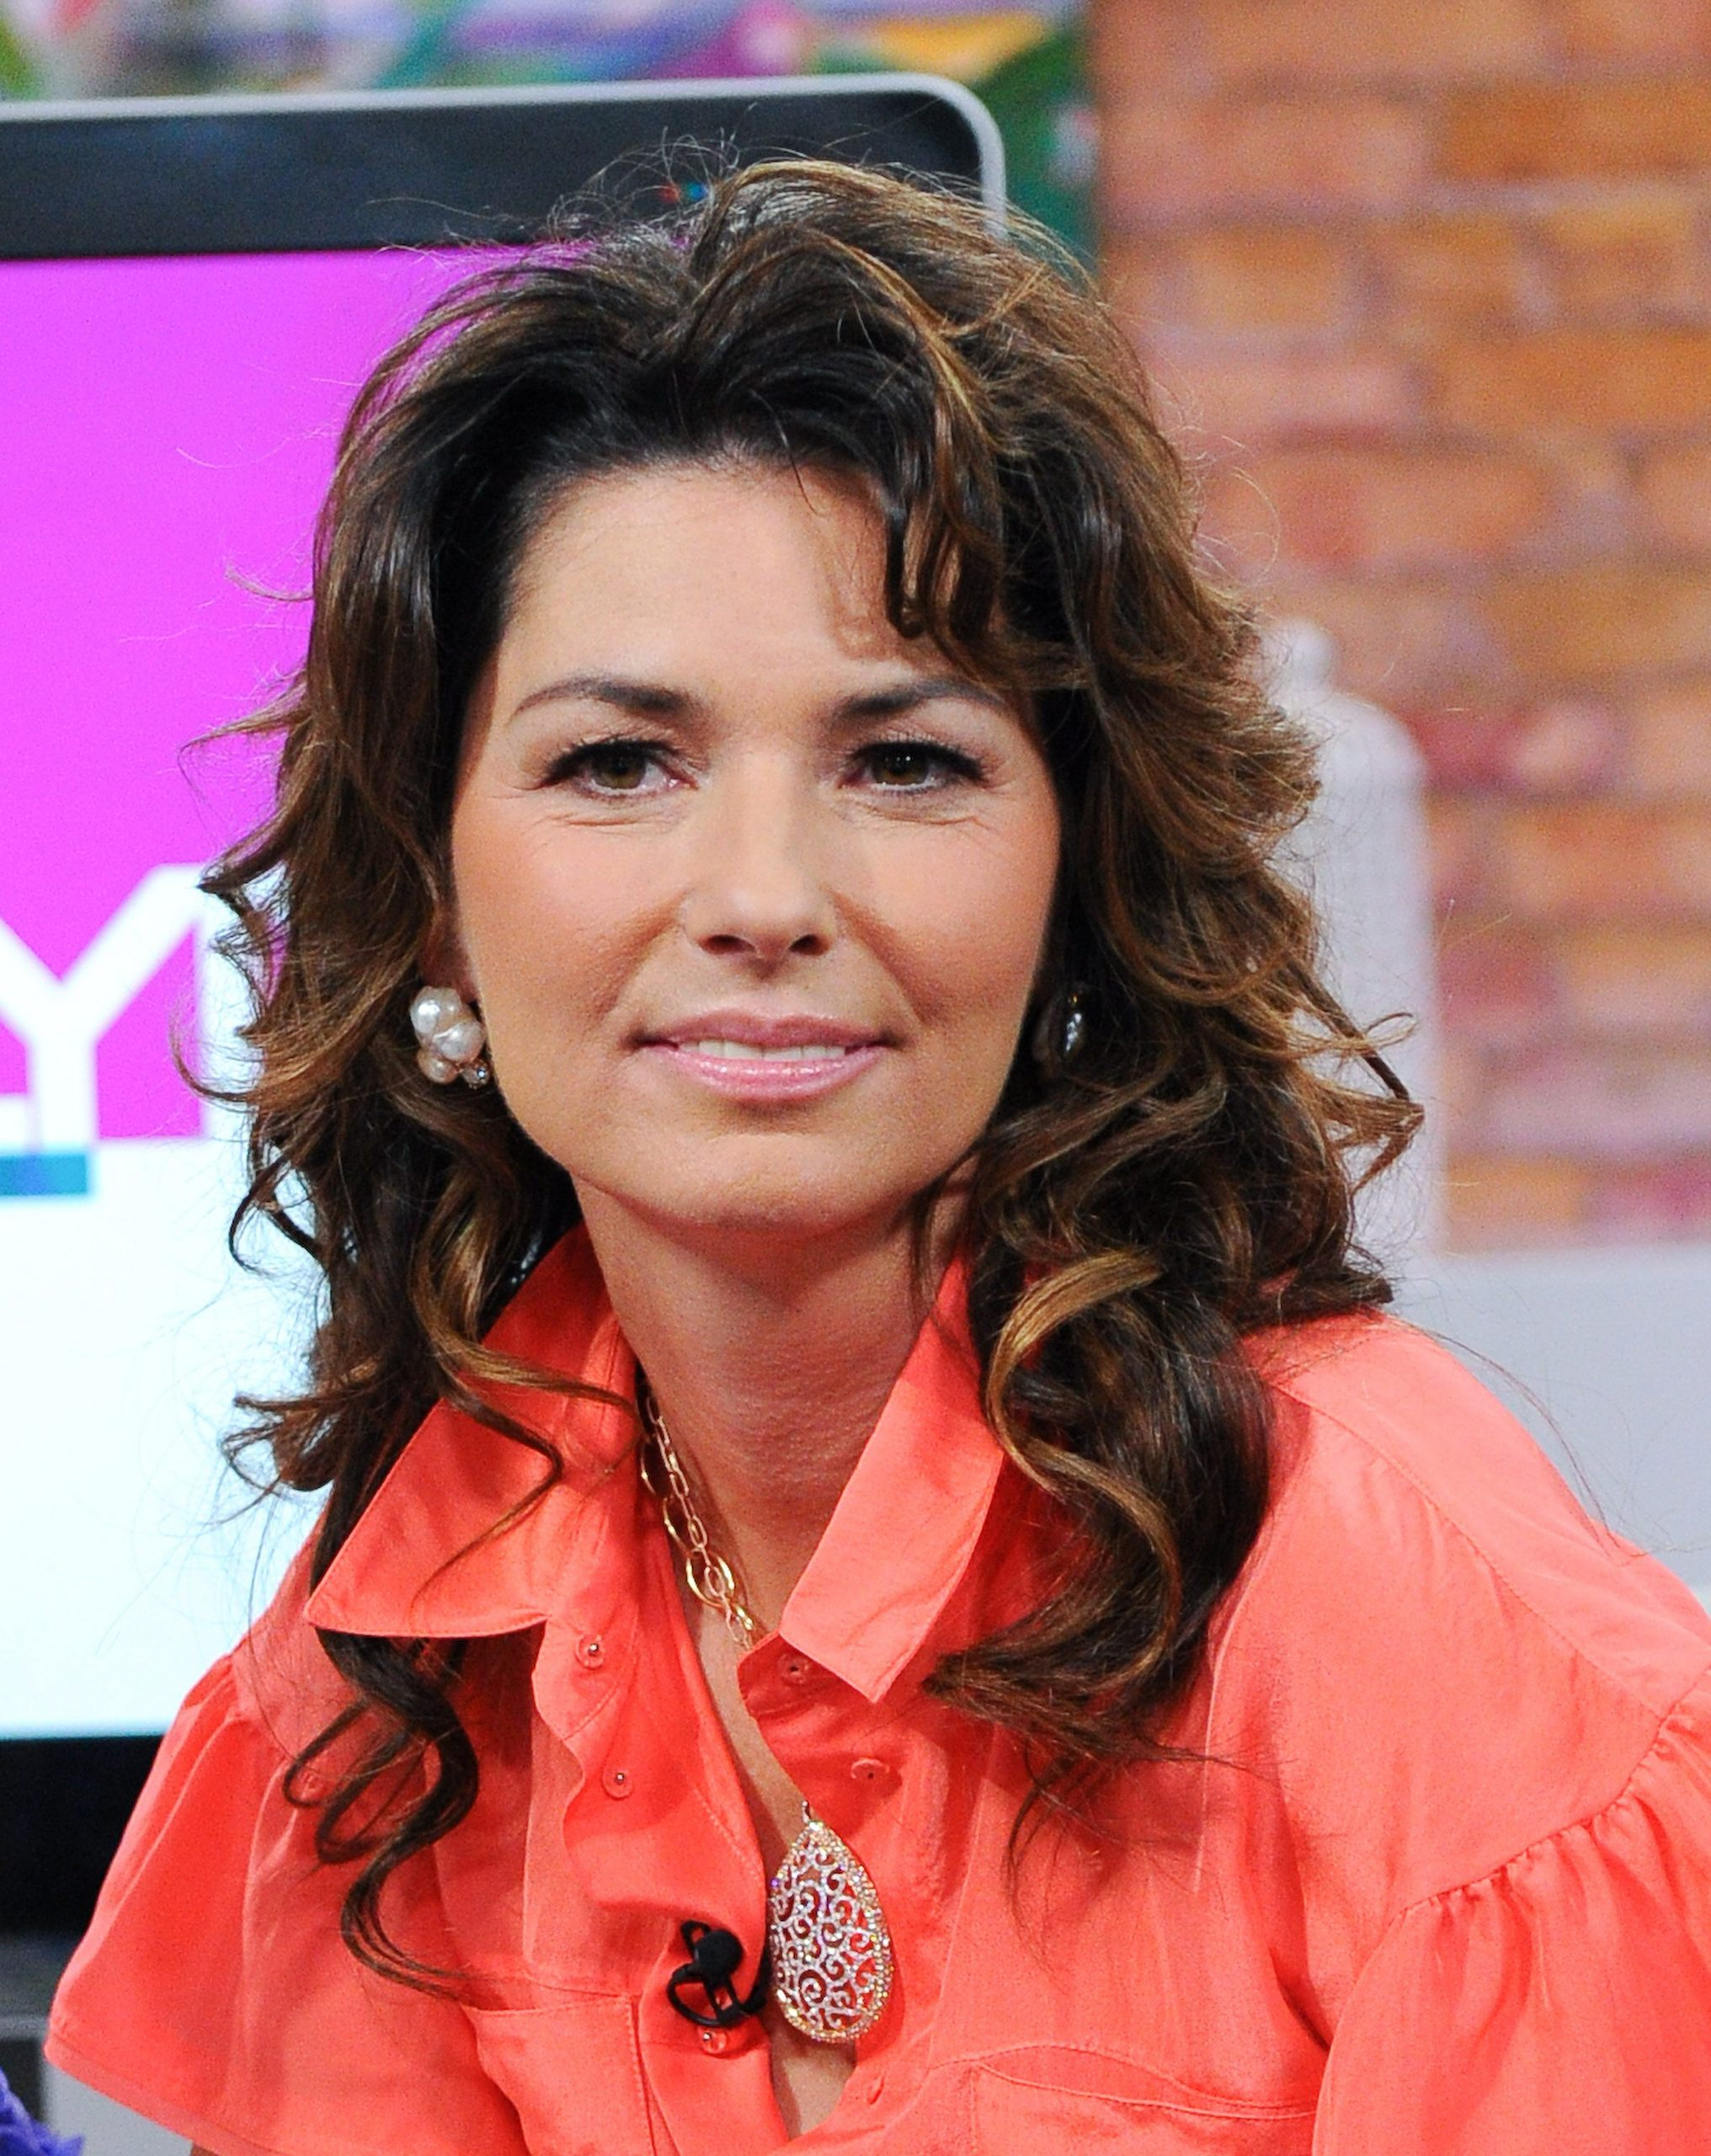 Shania Twain - Gallery Photo